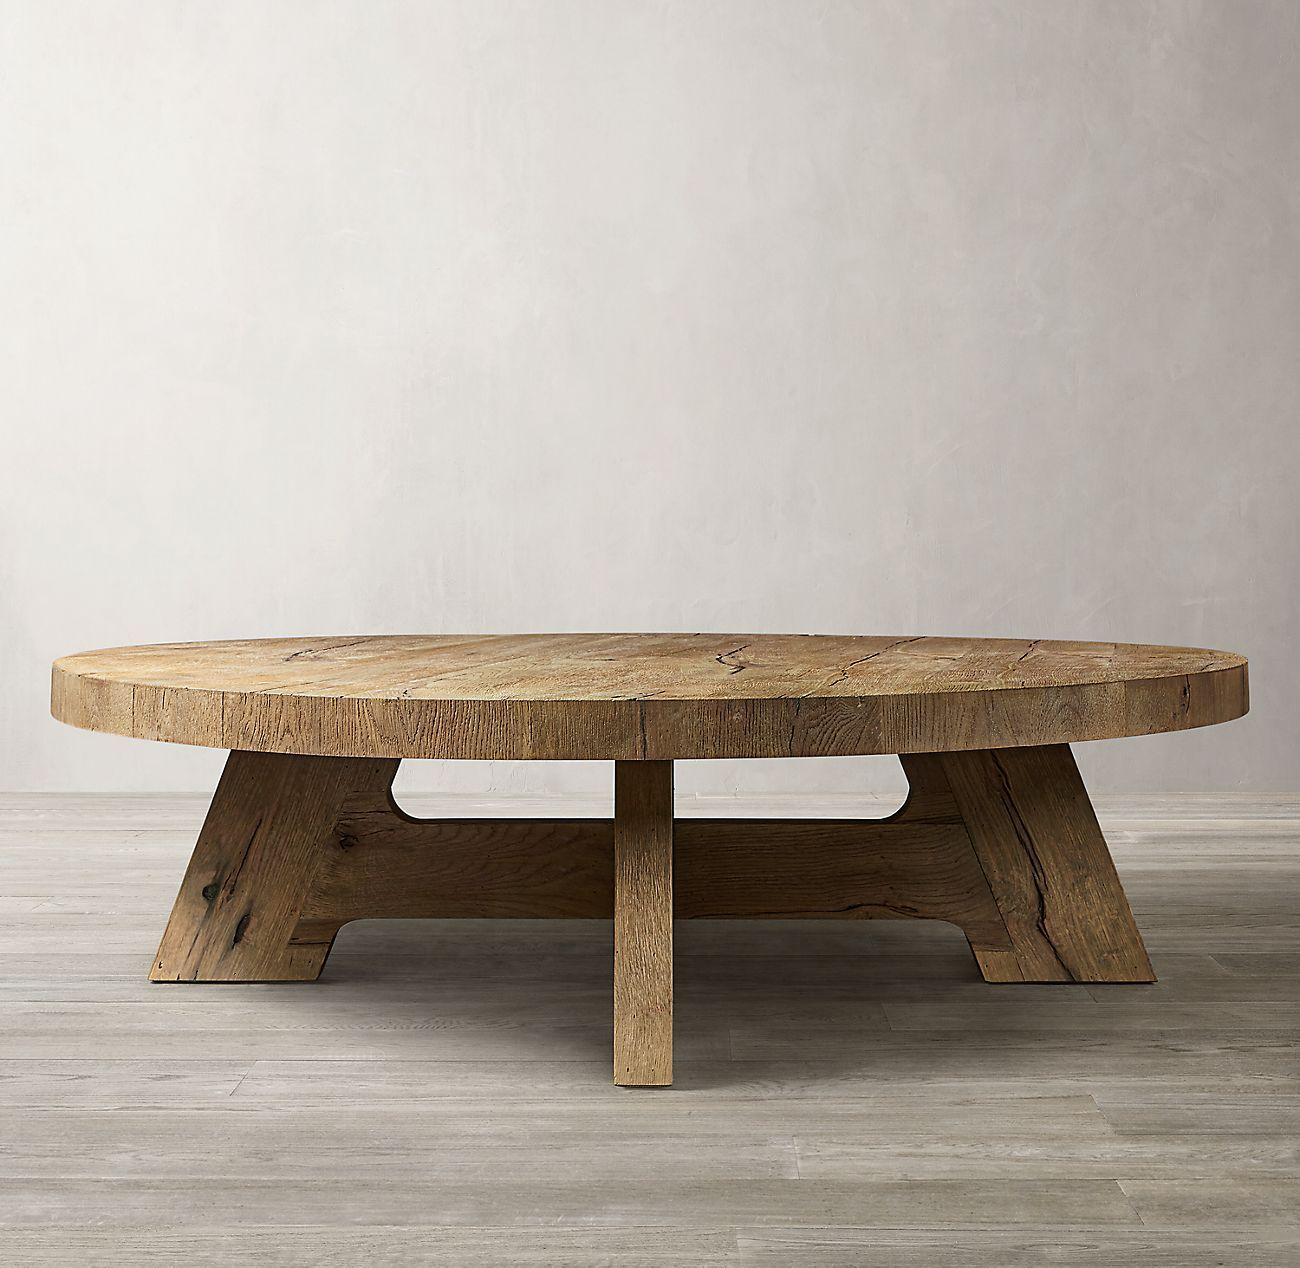 Davos Oak Round Coffee Table Coffee Table Wood Round Coffee Table Coffee Table Design [ 1268 x 1300 Pixel ]